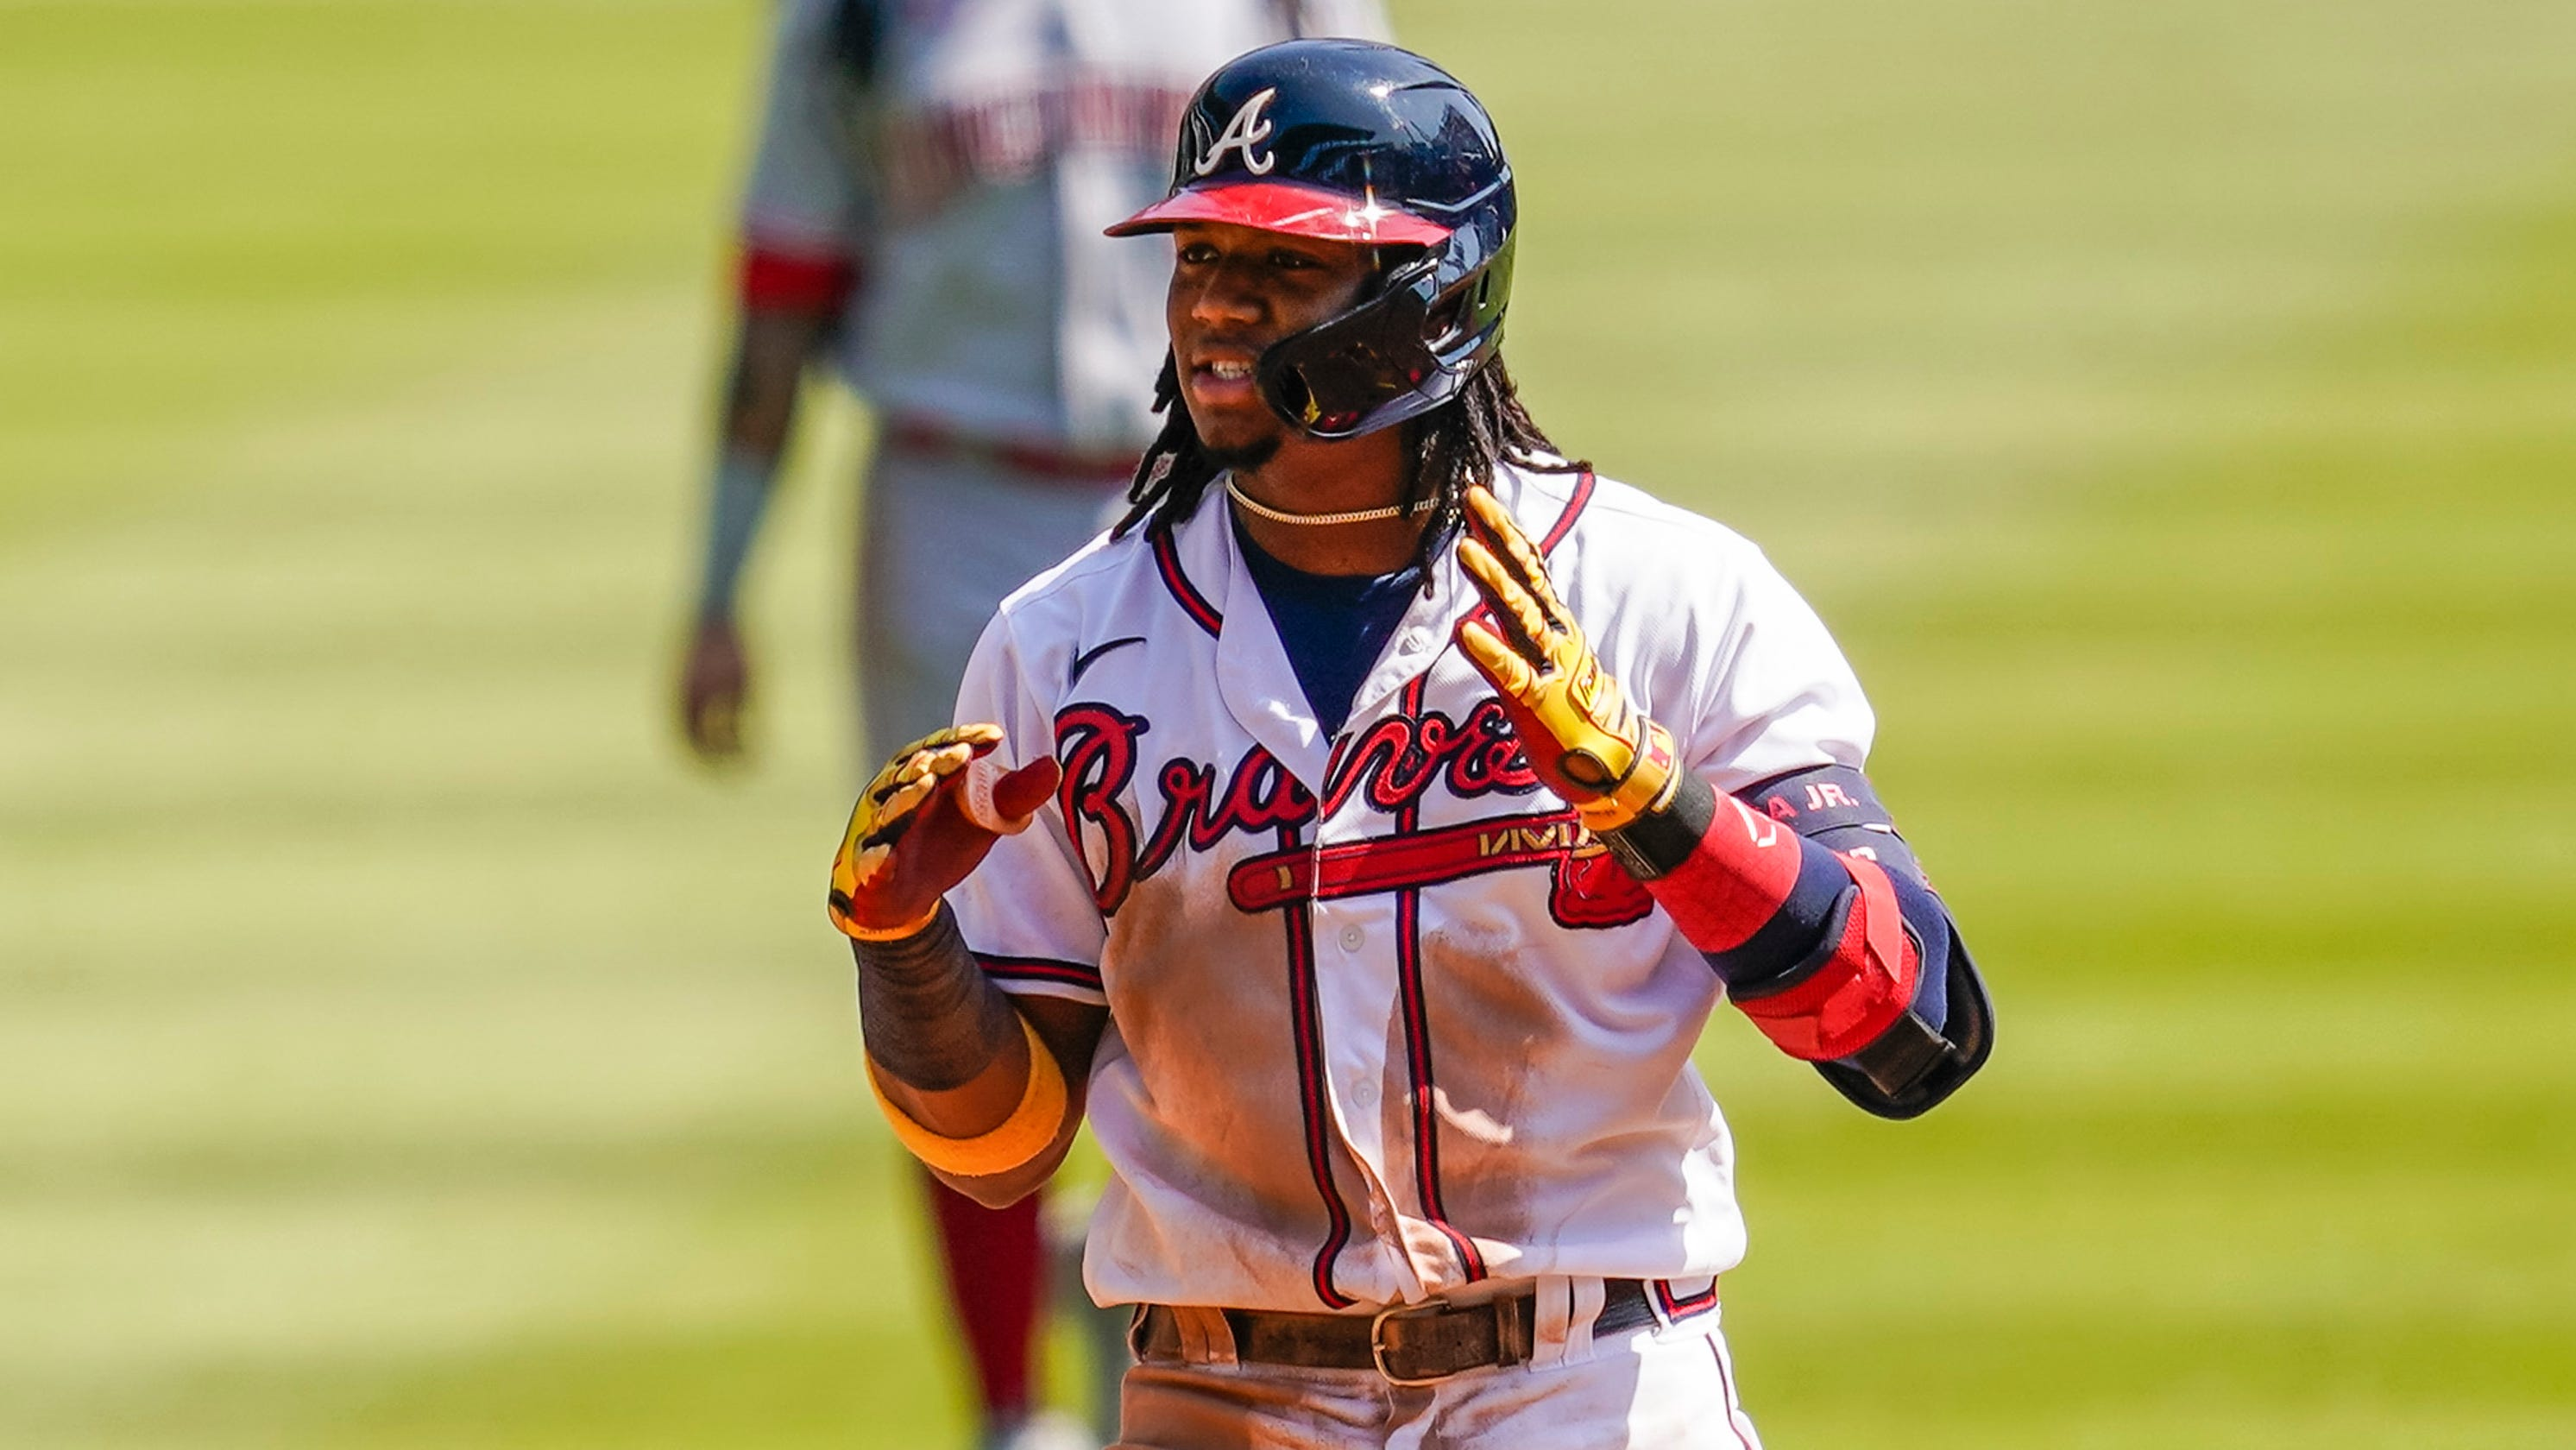 Braves sweep Reds, ending 19-year drought without postseason series win